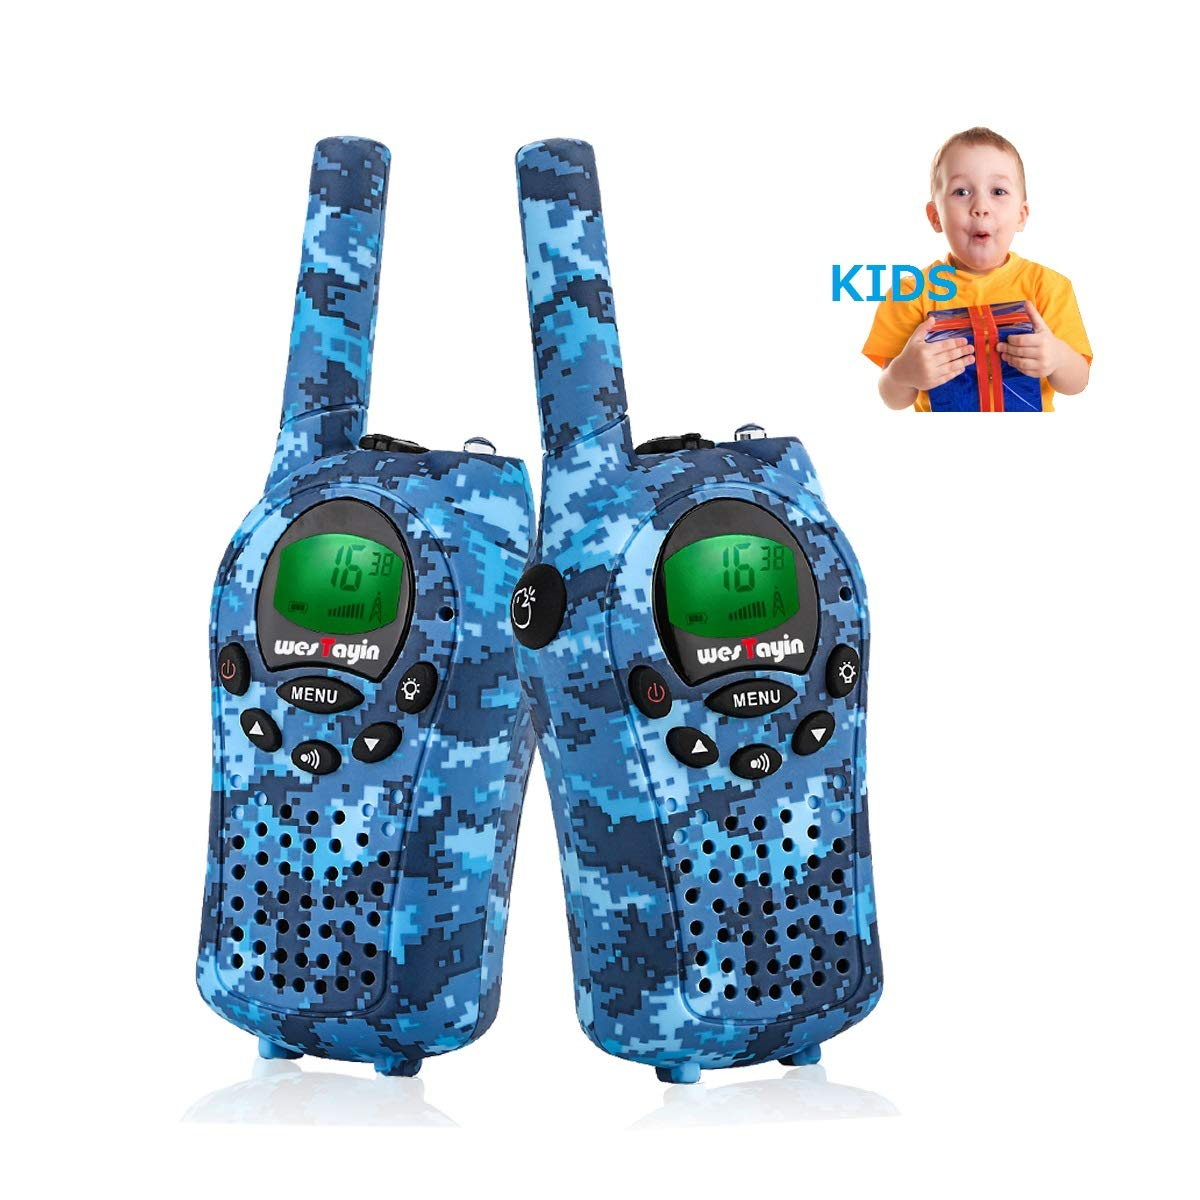 Walkie Talkies for kids, Kids Walkie Talkies for Girls and Boys , Vox Hands Free 4 Miles Long Range Walkie Talkie Set with Cystal Sound and LED Flashlight, Best Kids Toys Gifts for Christmas Birthday by WES TAYIN (Image #1)